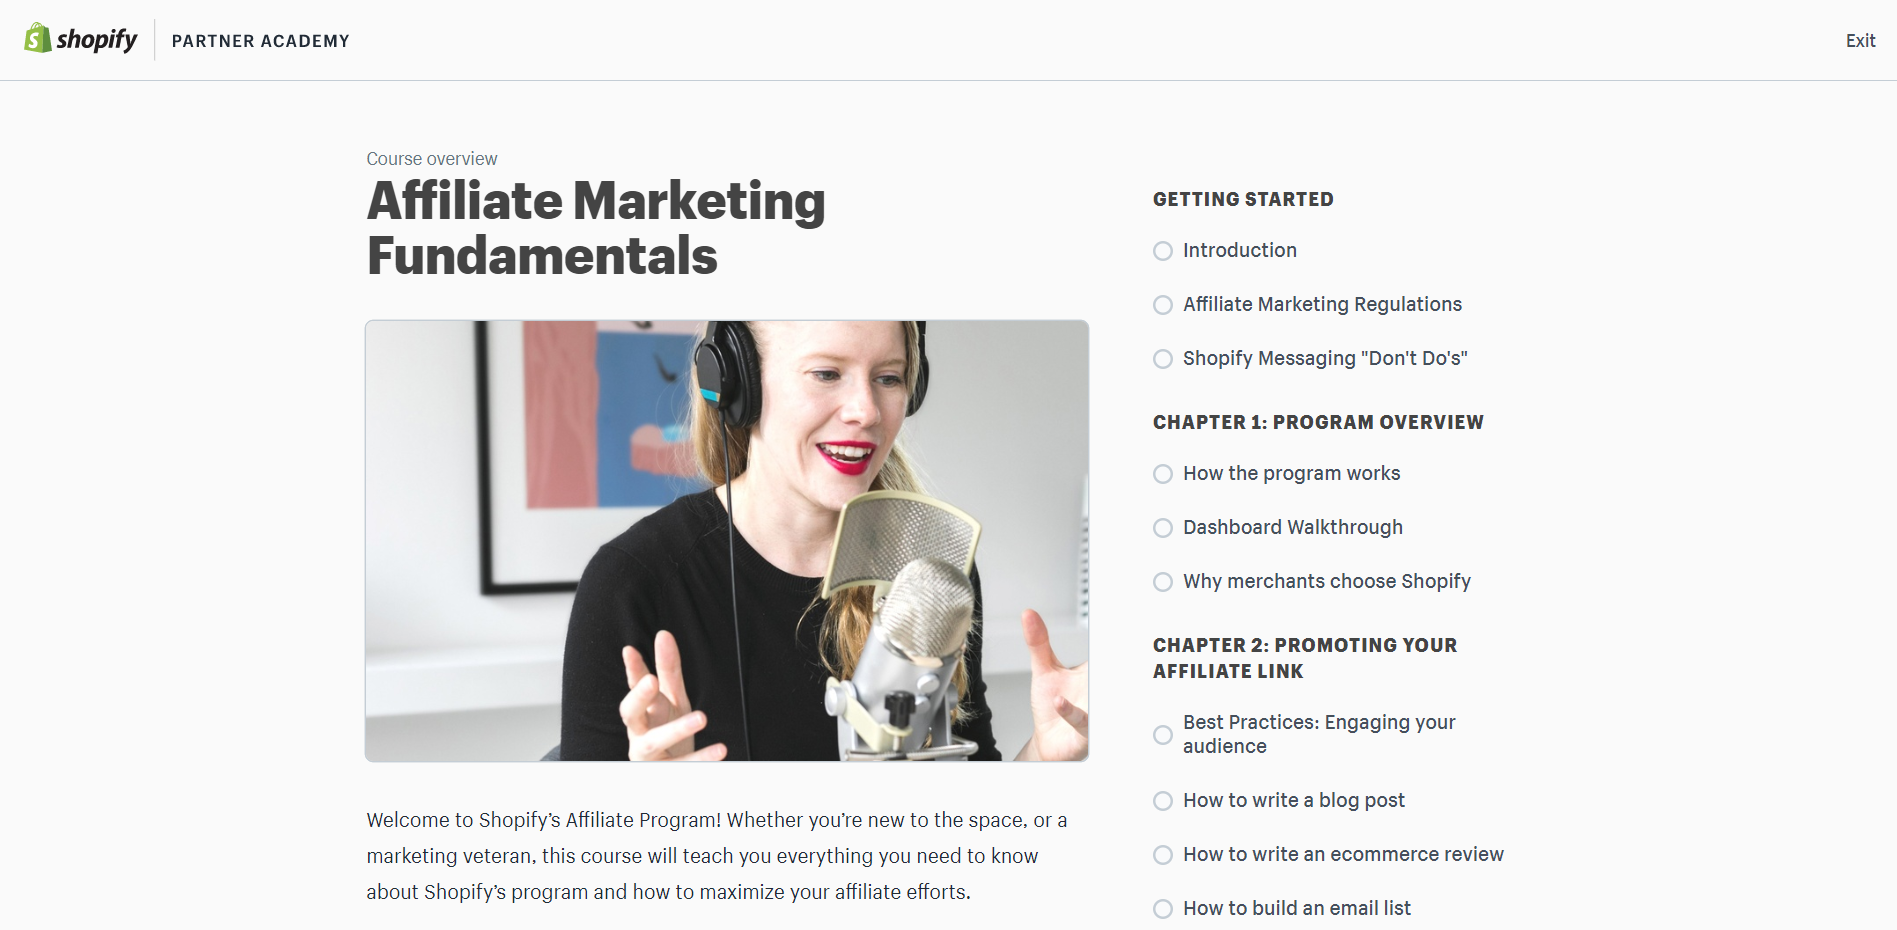 The Shopify Academy for affiliate marketing page